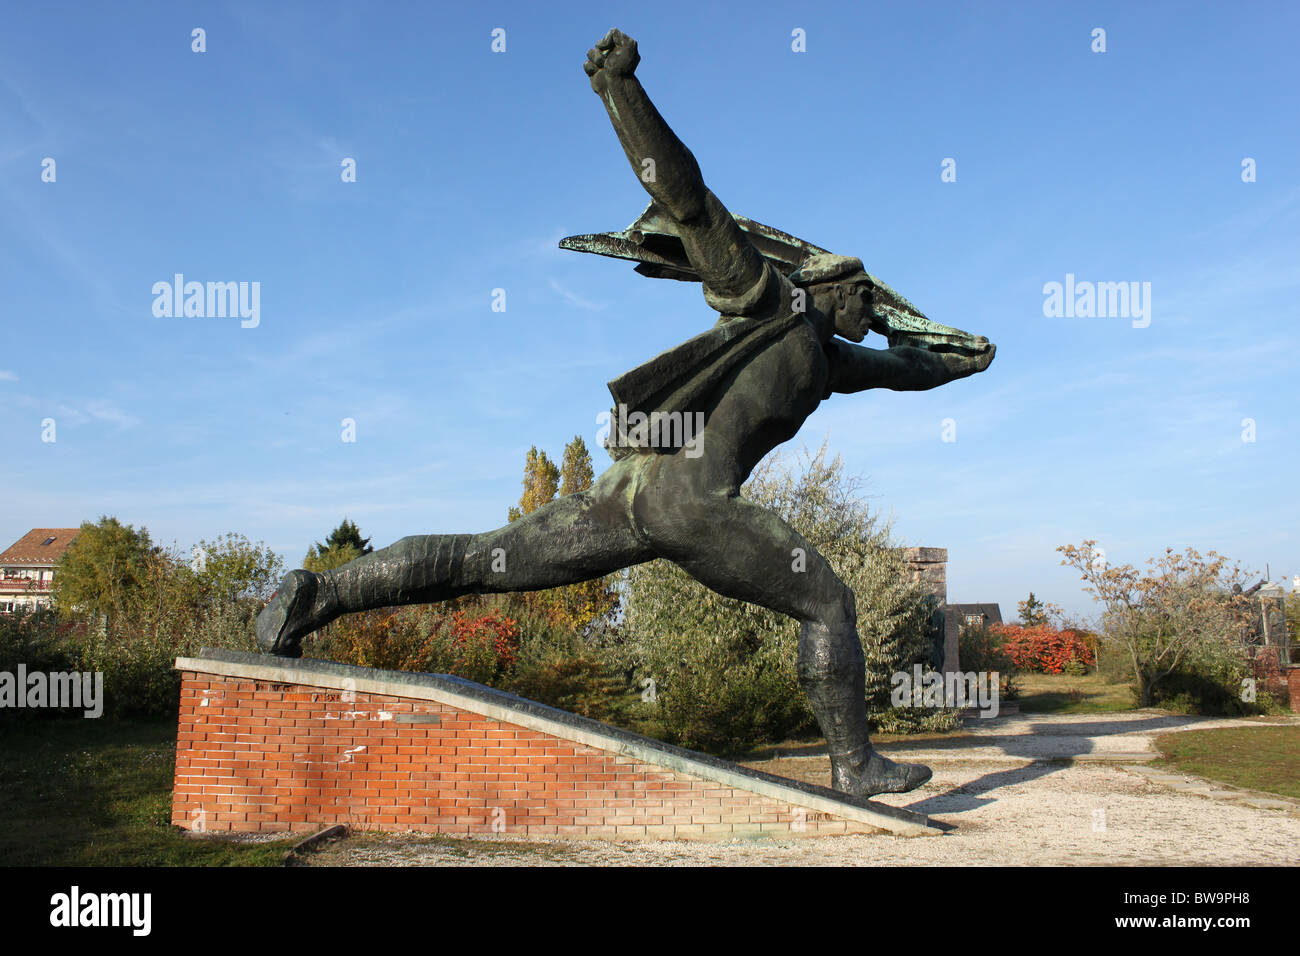 Republic of Councils Monument Memento Park, Budapest, Hungary. - Stock Image